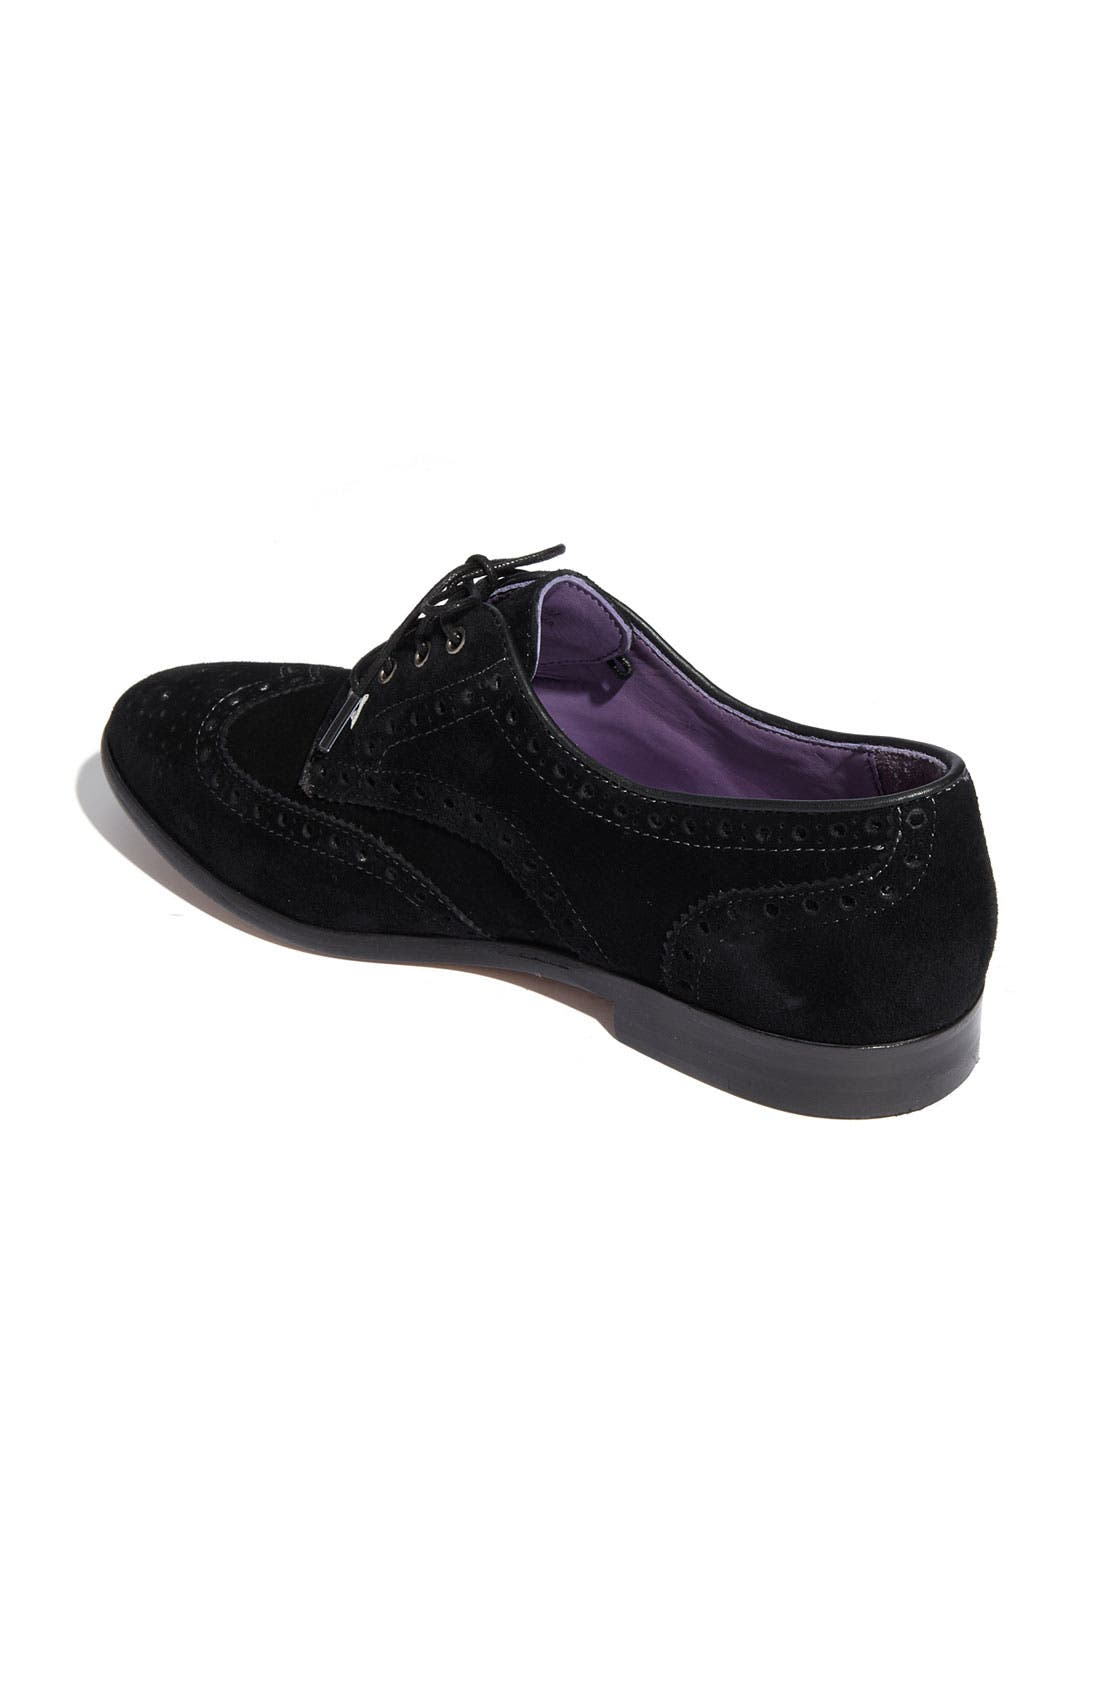 Anna Sui for Hush Puppies<sup>®</sup> 'Lindley' Oxford,                             Alternate thumbnail 3, color,                             001